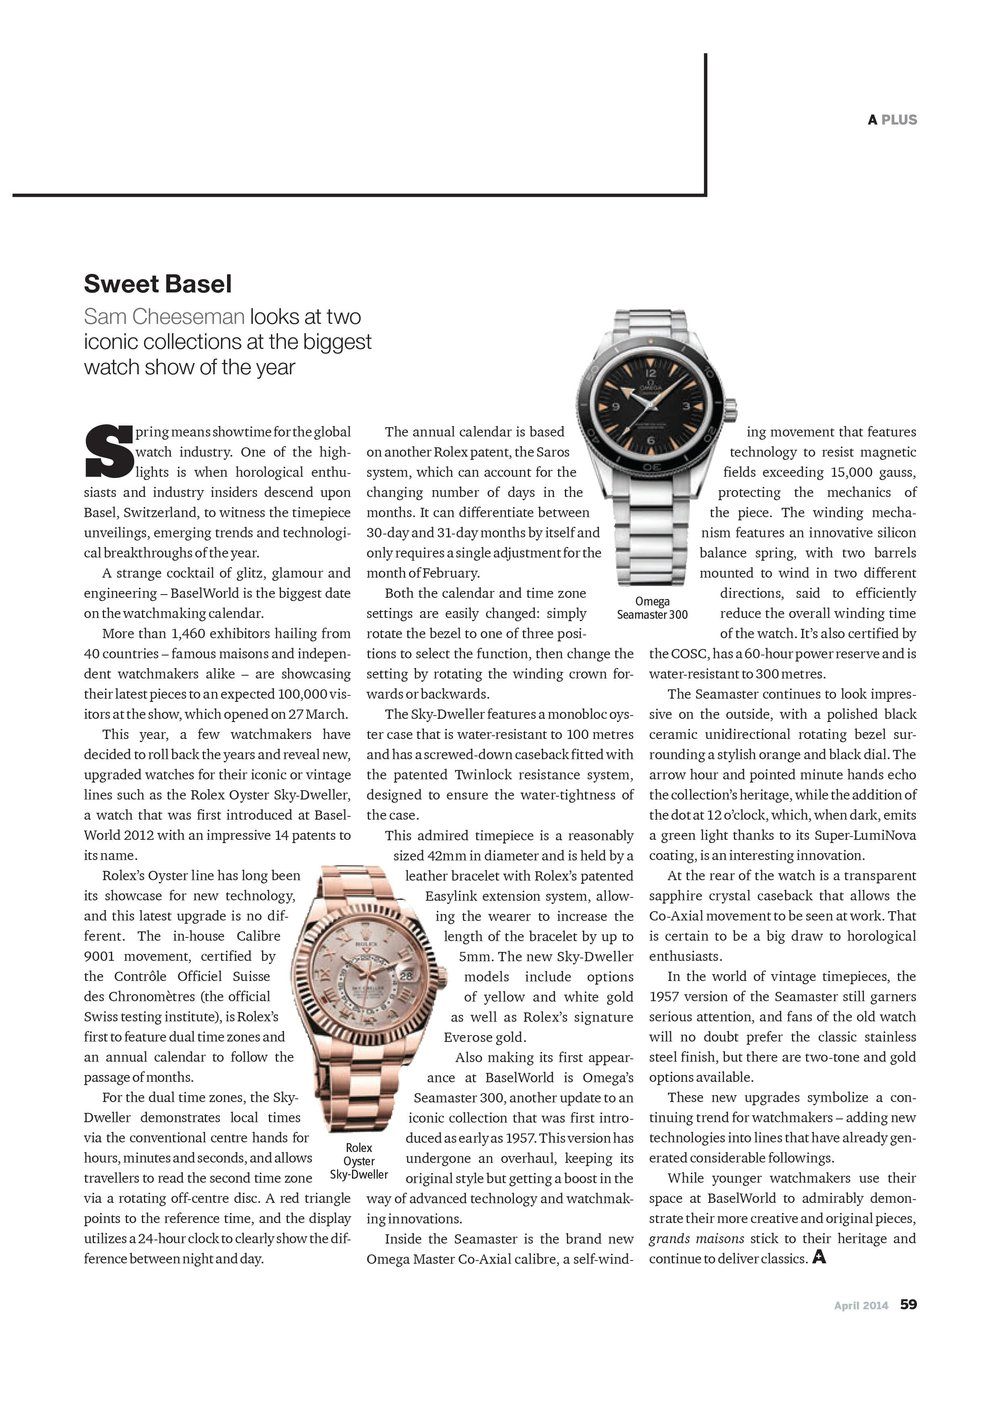 Articles-05_0006_April-full-pages-deleted-min.jpg